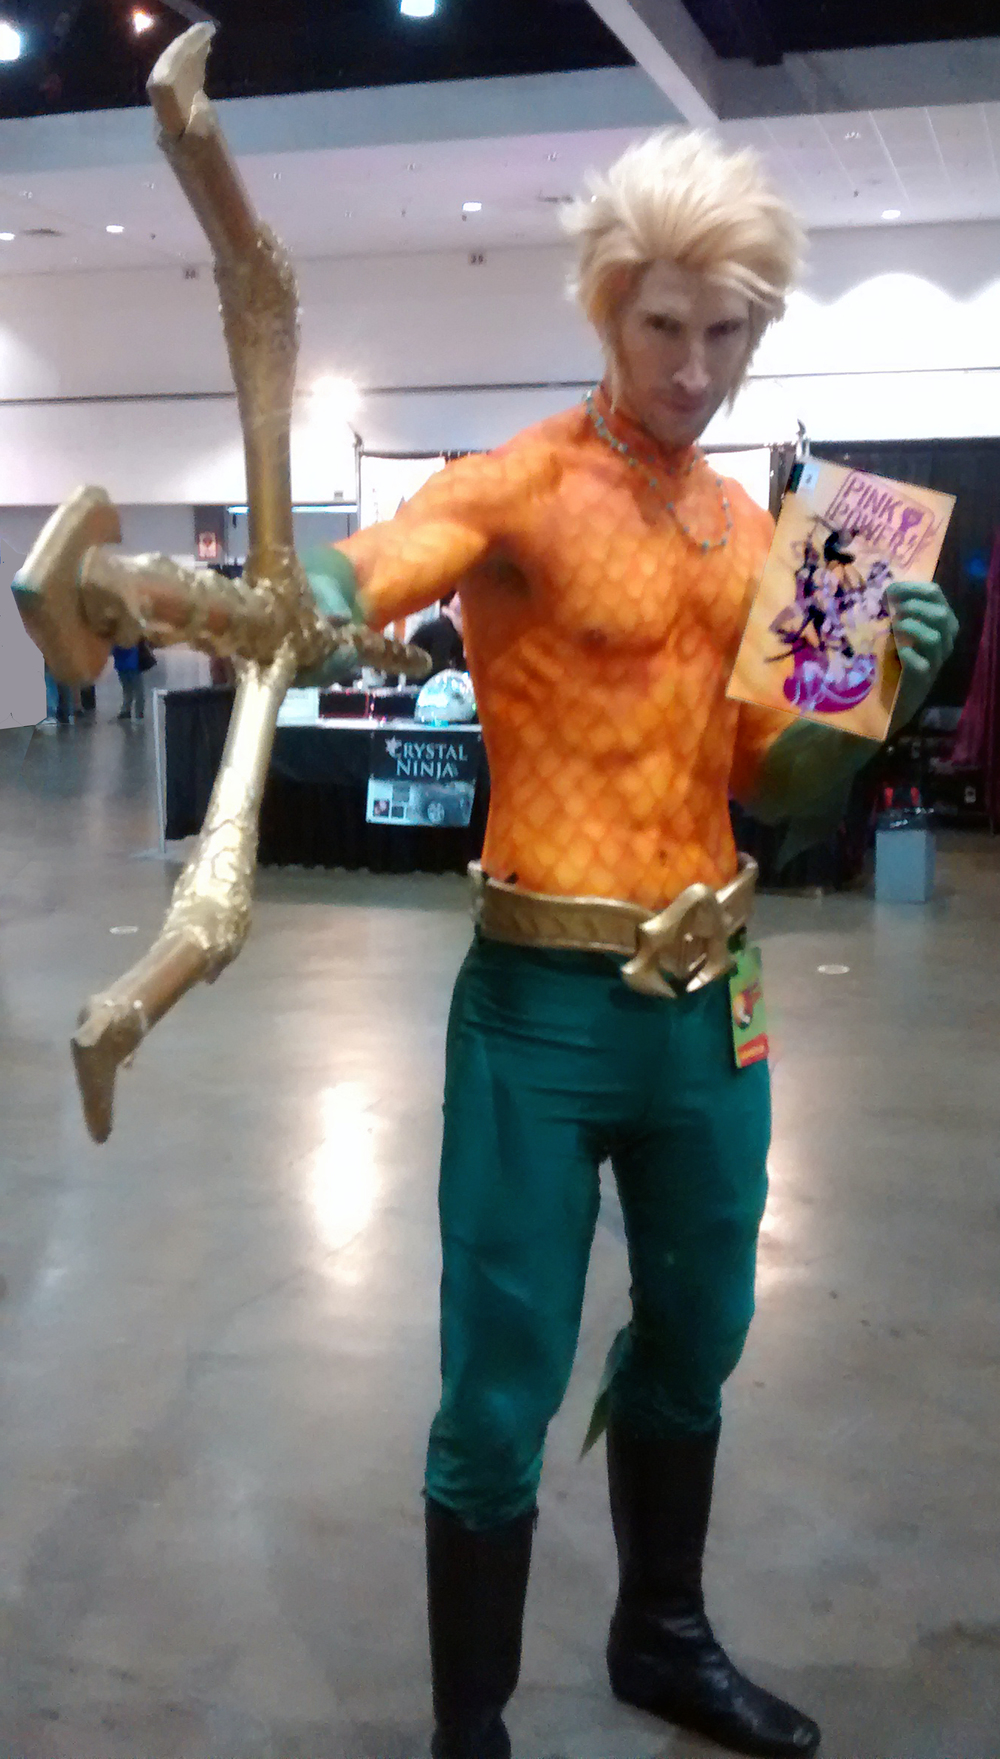 Aquaman copyright: DC Comics